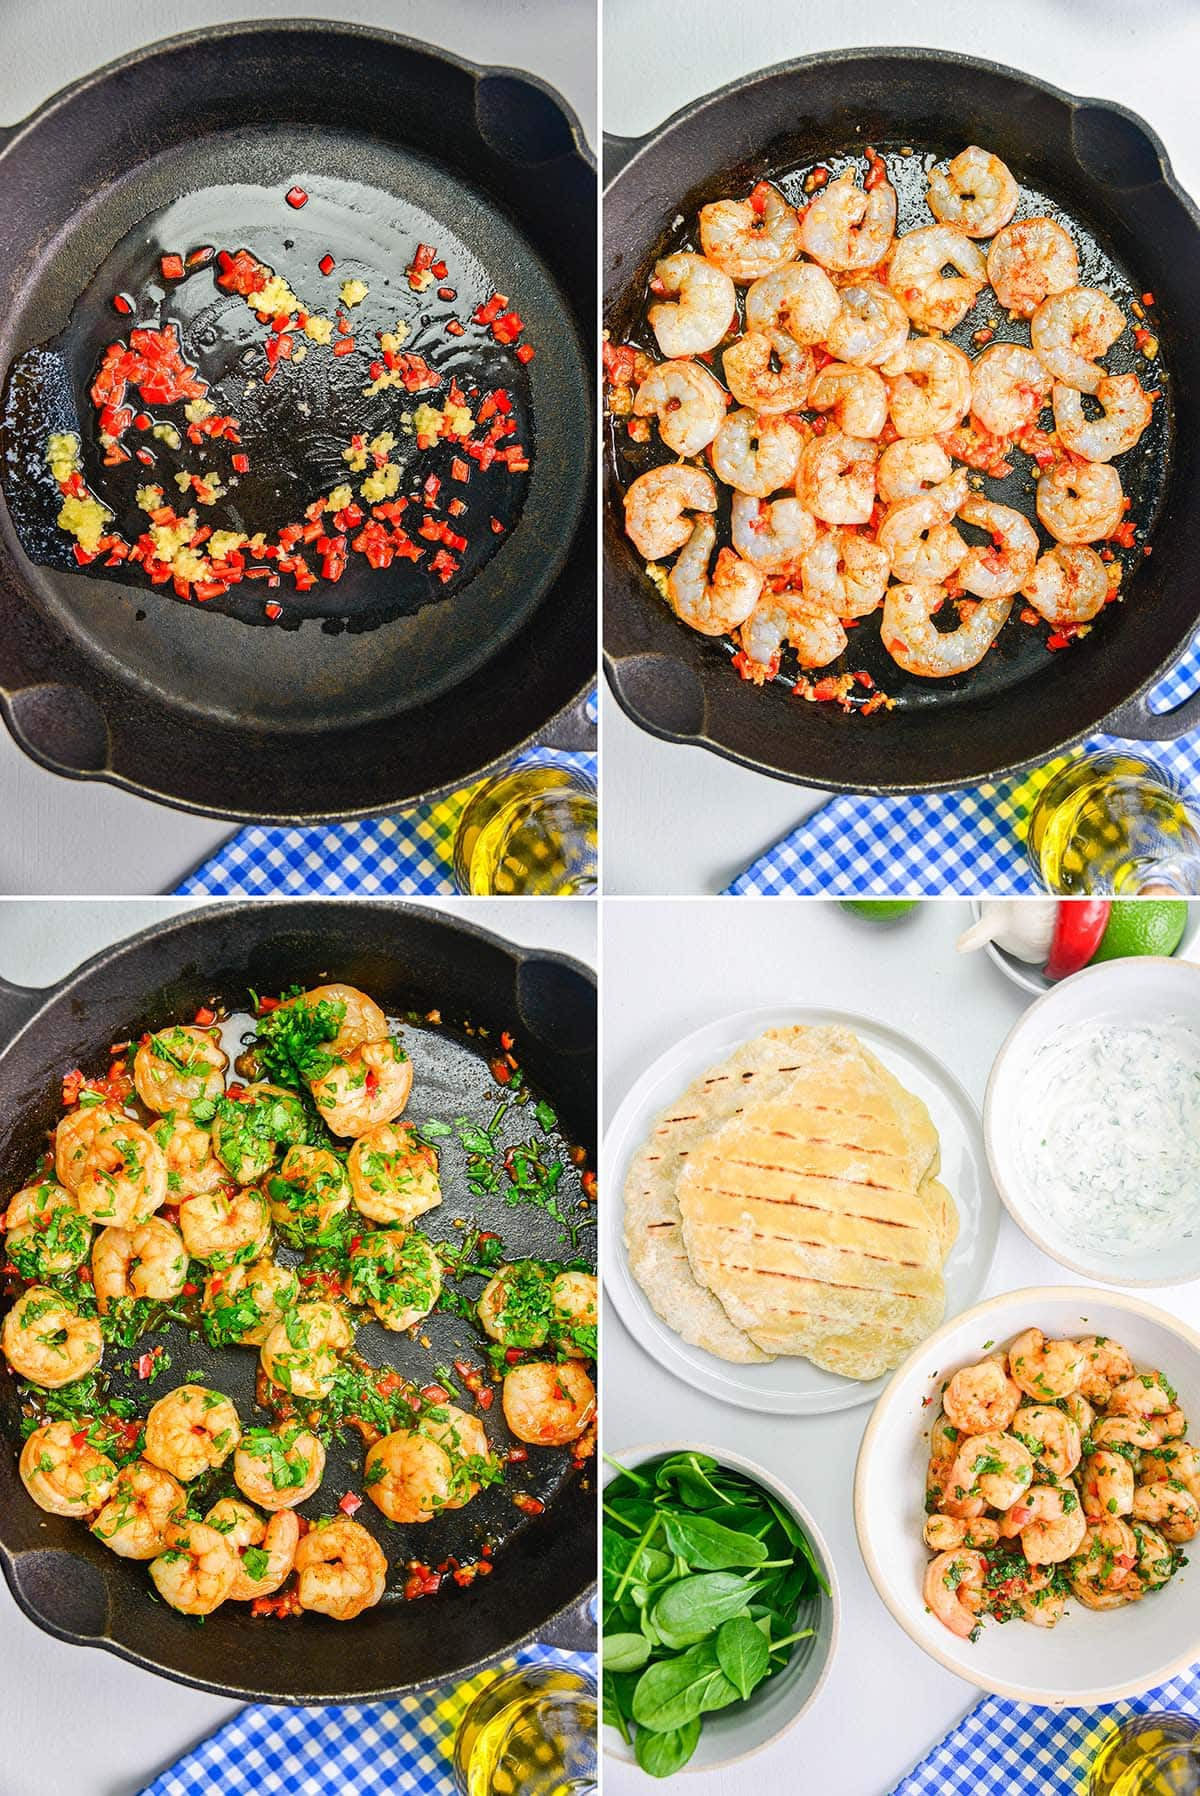 4 image collage showing how to make garlic chilli prawns to serve with flatbreads, spinach and yogurt dip